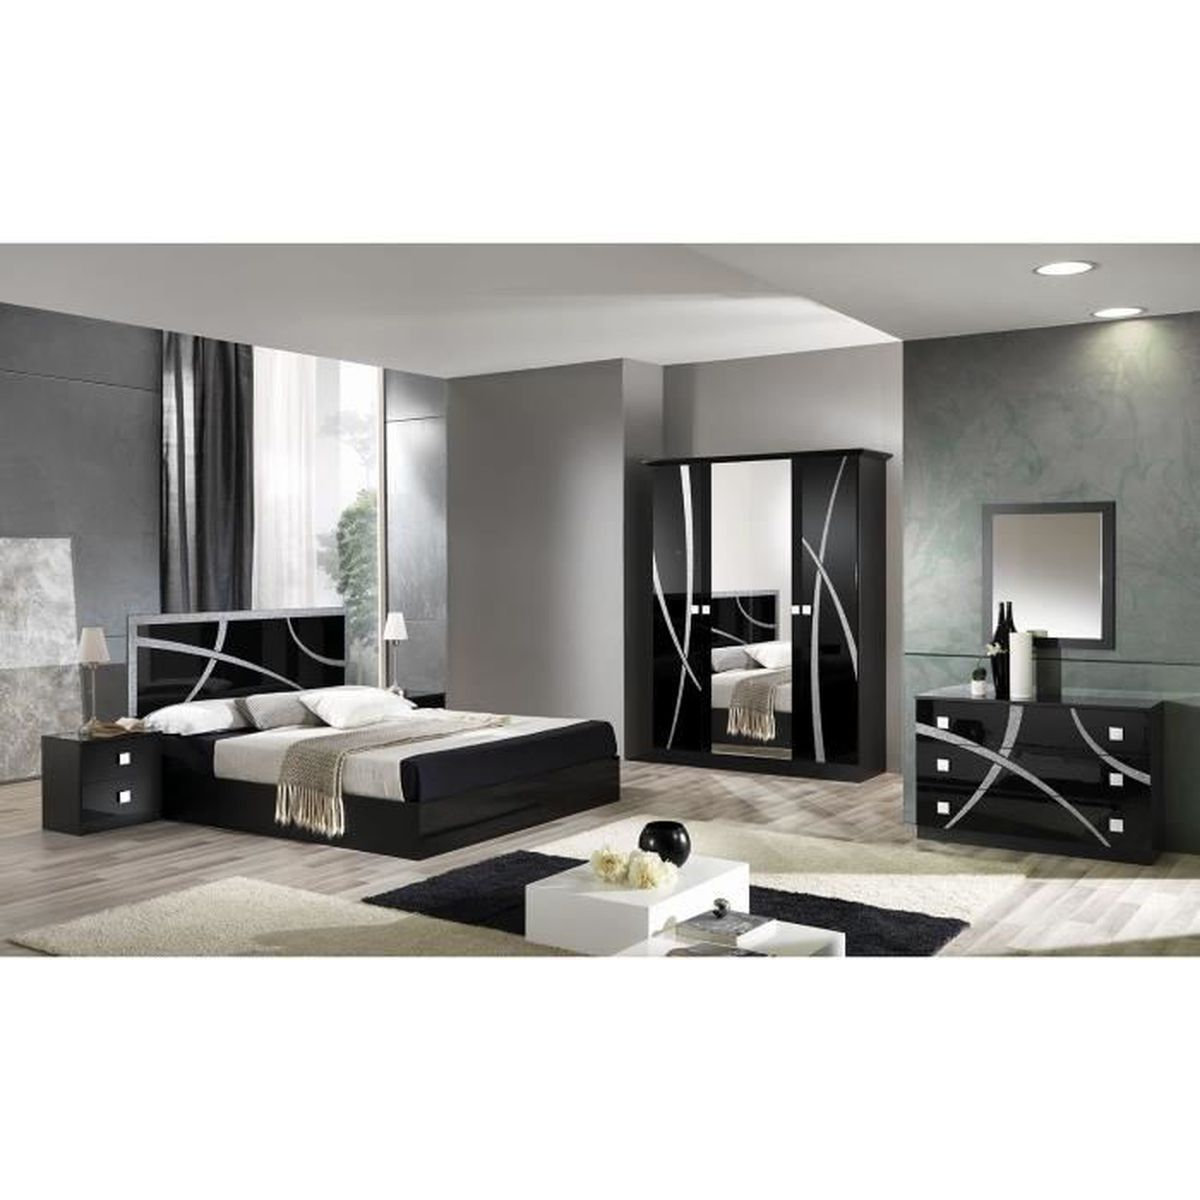 Chambre compl te adulte 160x200 achat vente chambre for Chambres adultes completes design